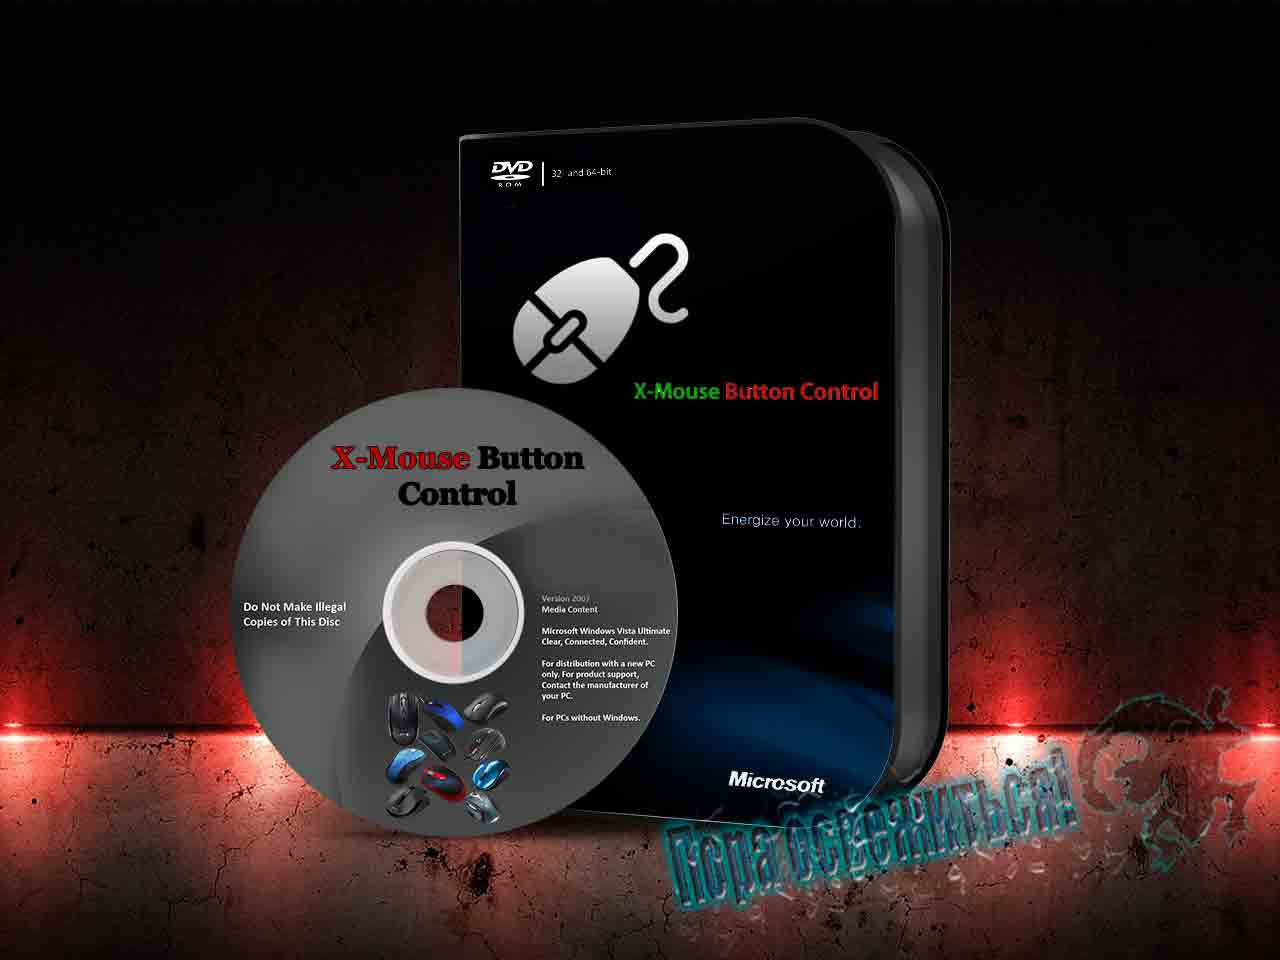 Apps about utilities windows like 7 home premium, daemon tools, hetman partition recovery строк 201 convert ivt bluesoleil serial key trail version software micro class 1 logilink dongle